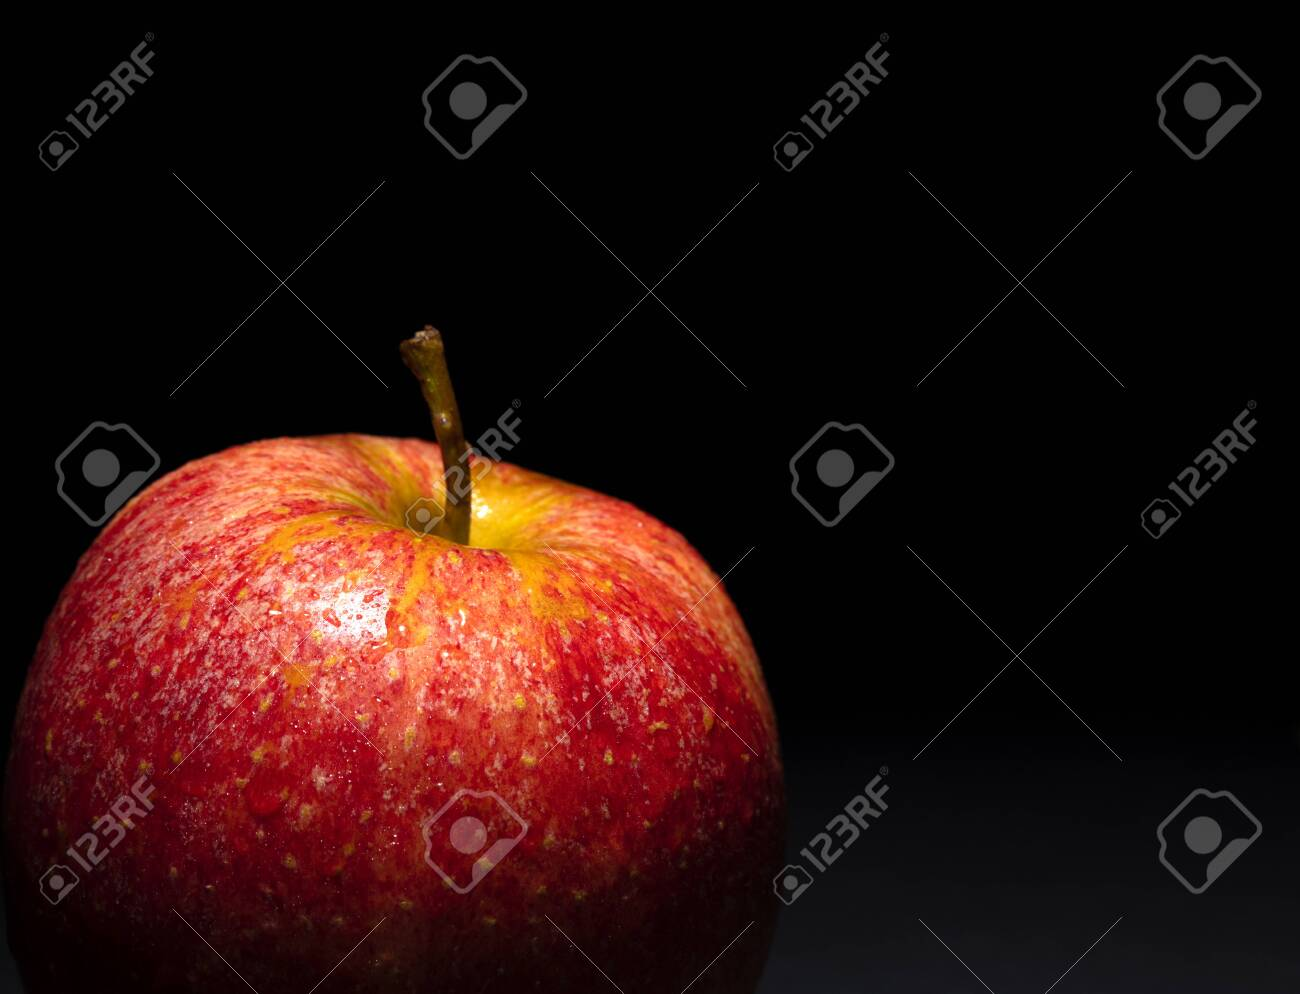 red apple with drops of water on black background, image conveys freshness, free space above for text - 123523751